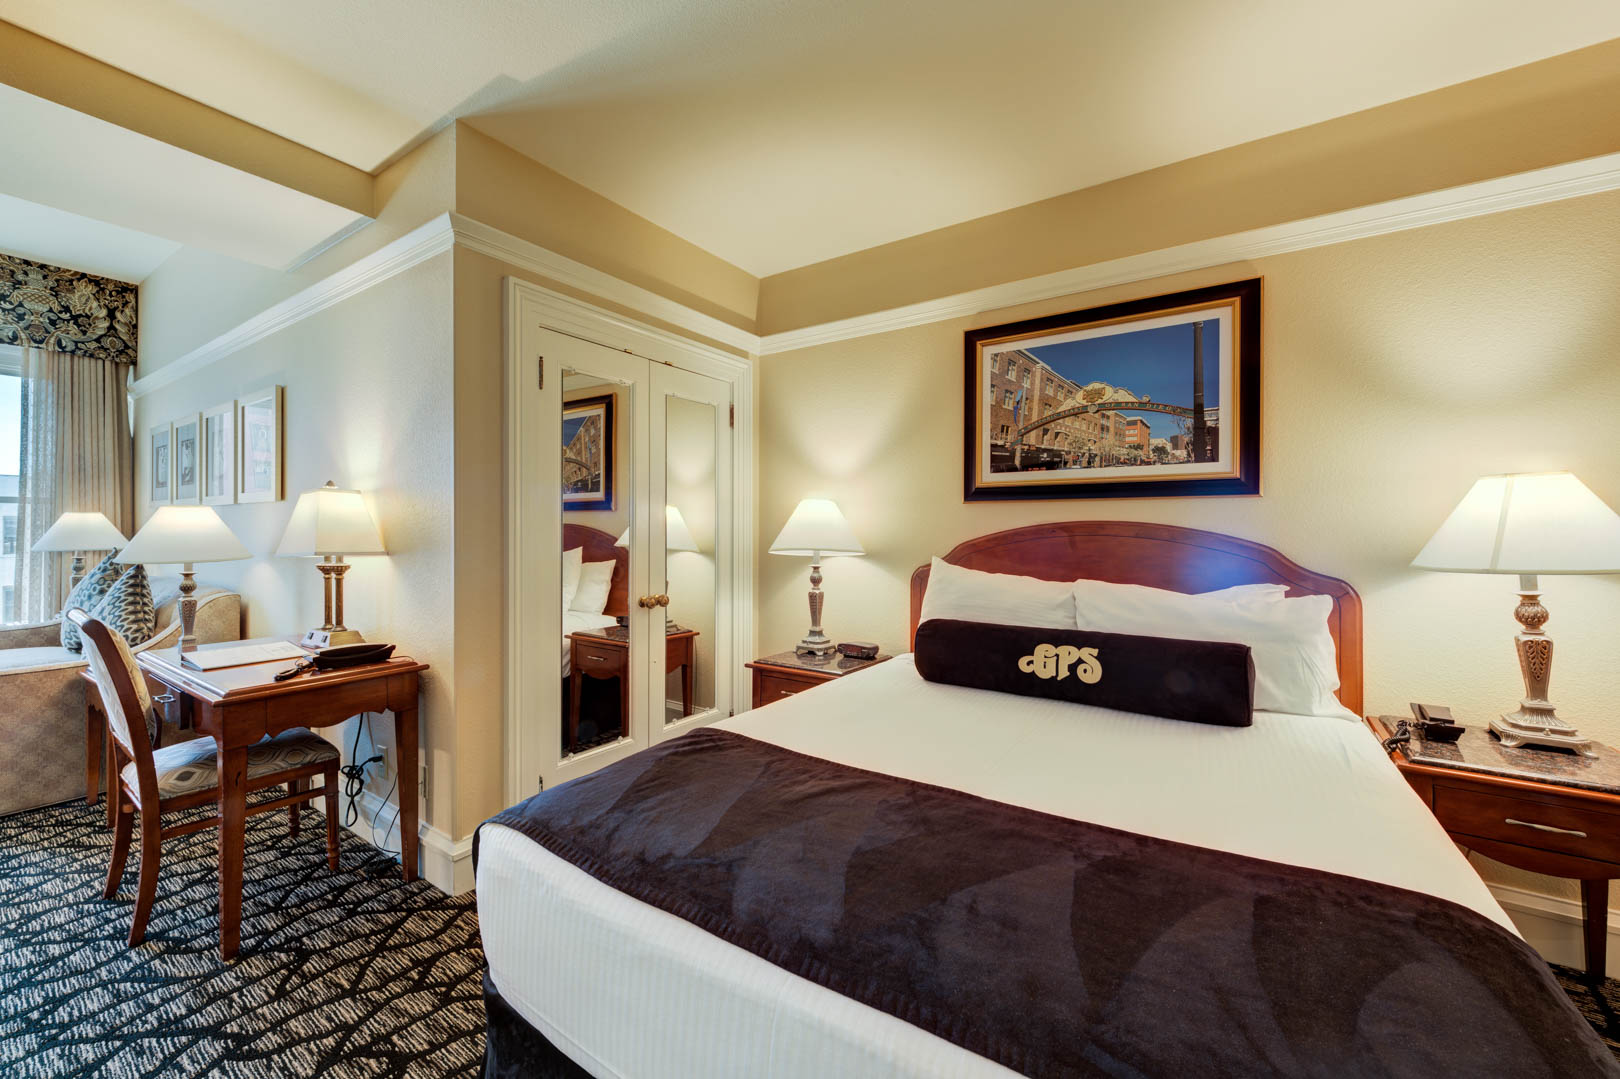 A charming master bedroom and living room area at VRI's Gaslamp Plaza Suites in San Diego, California.